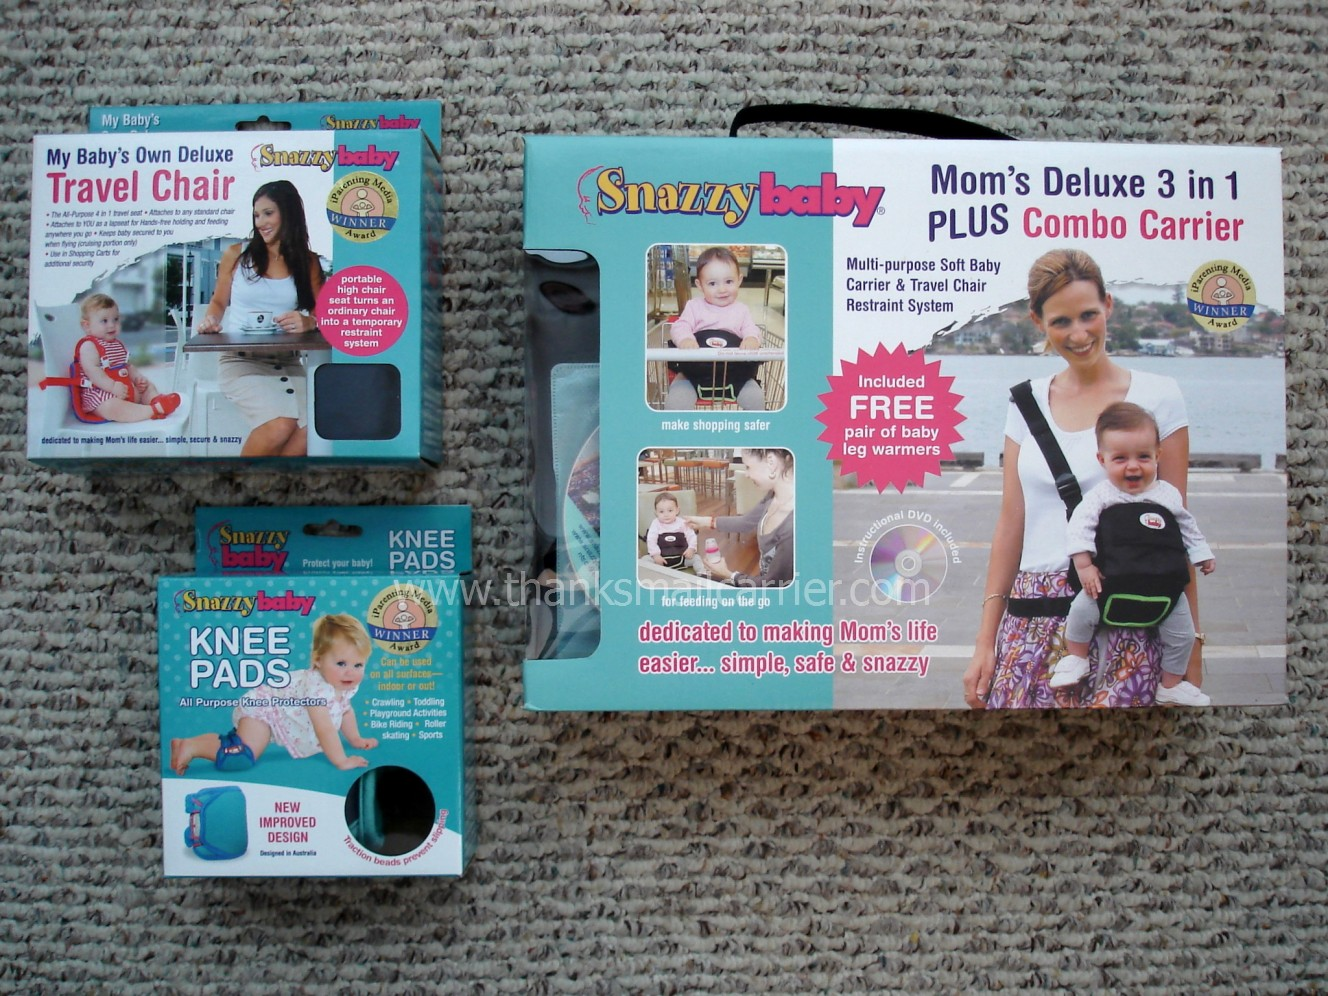 Snazzy Baby Kneepads, Travel Chair and Deluxe Combo Carrier – Click to see the Travel Chair in our store